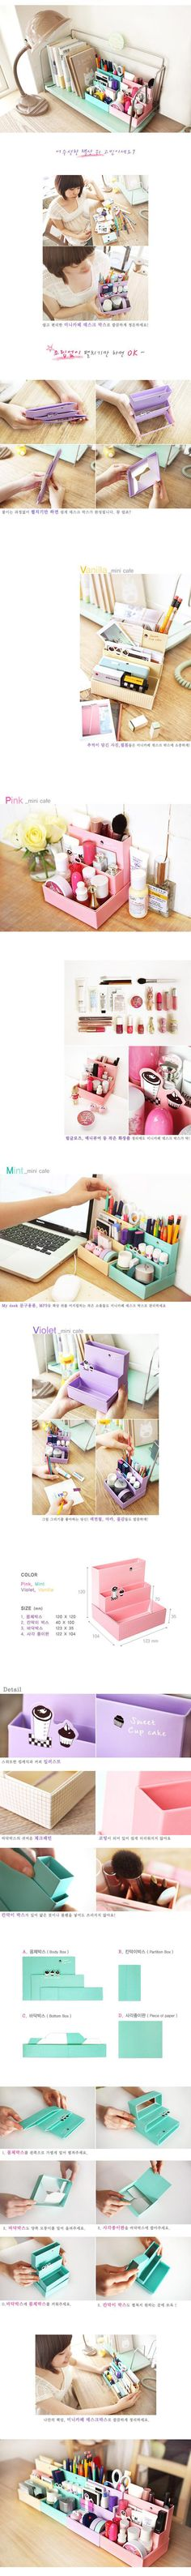 free shipping 2013 fashion diy storage box desktop finishing box cosmetic jewelry box office stationery desktop storage-in Storage Boxes & Bins from Home & Garden on Aliexpress.com